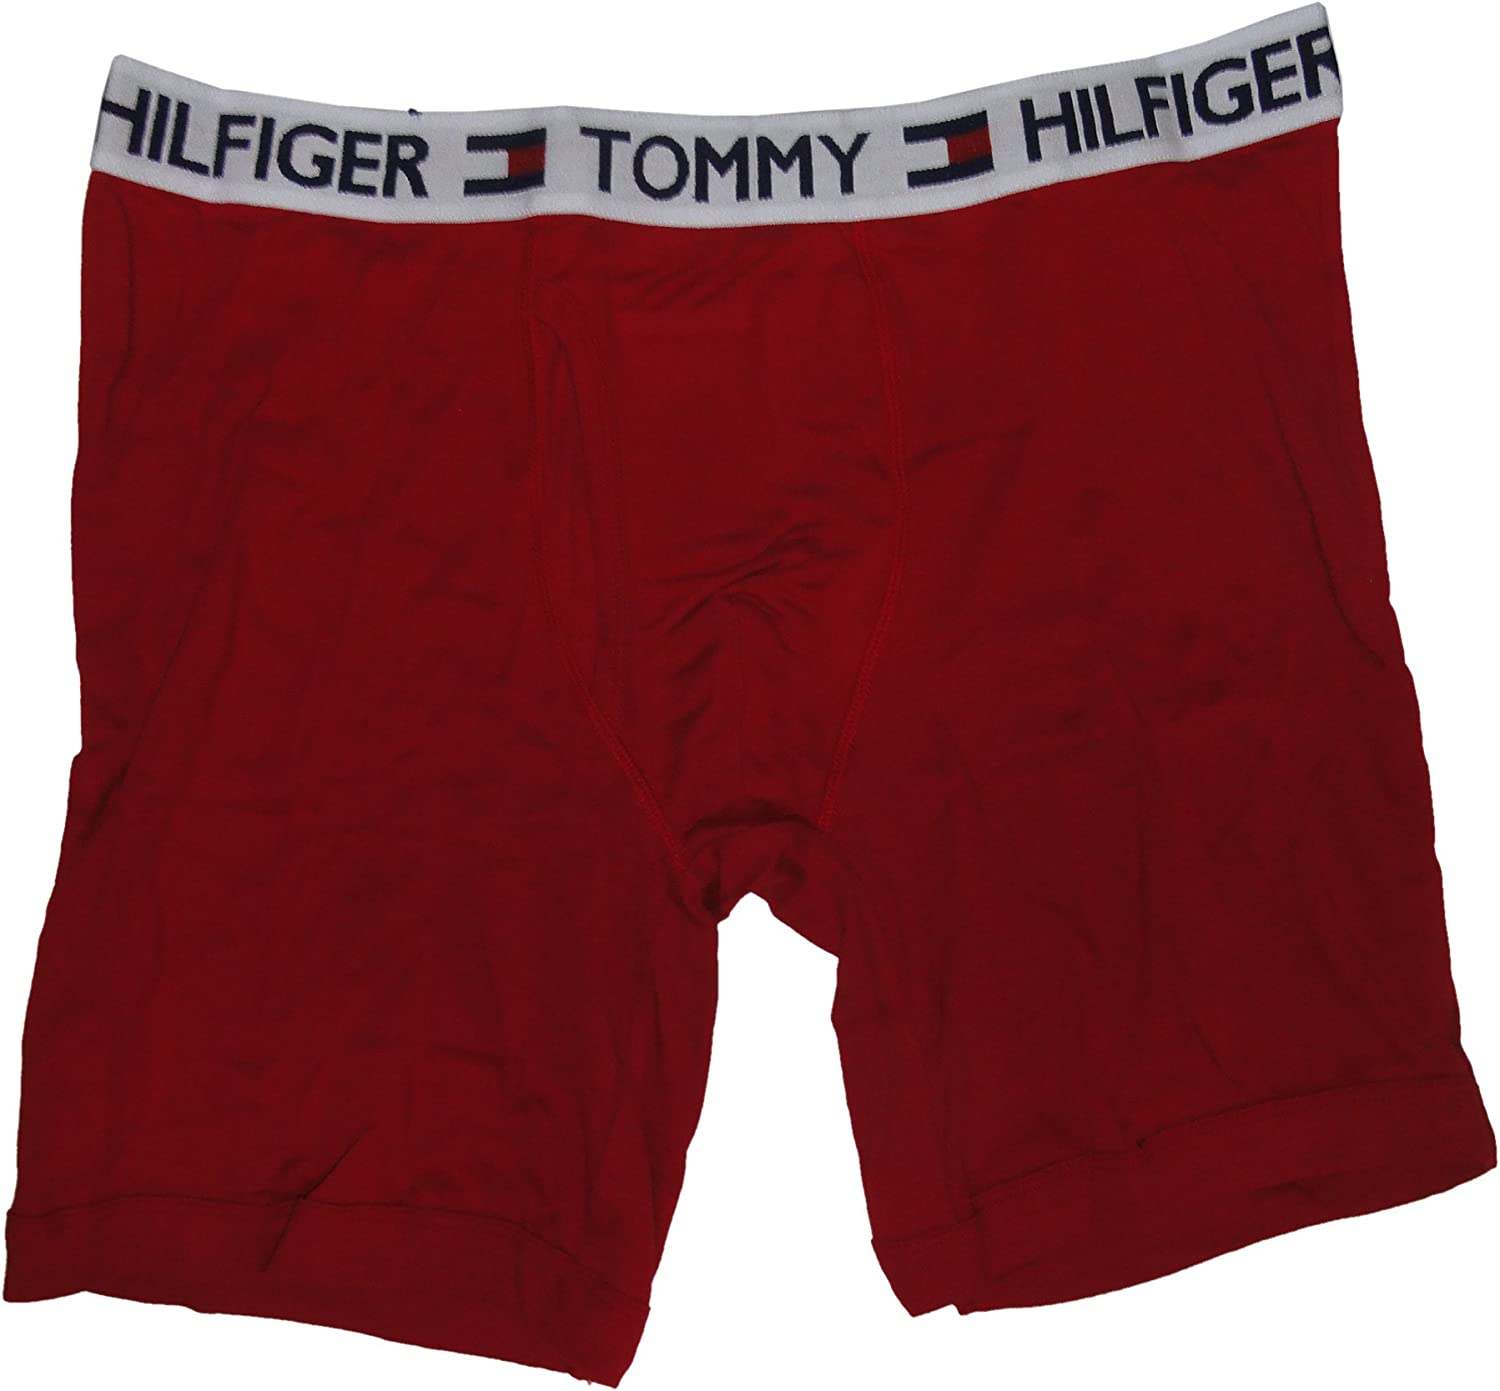 Tommy Hilfiger Men's Classic Boxer Briefs, Small 28-30, Red/Black, (Pack of 2)